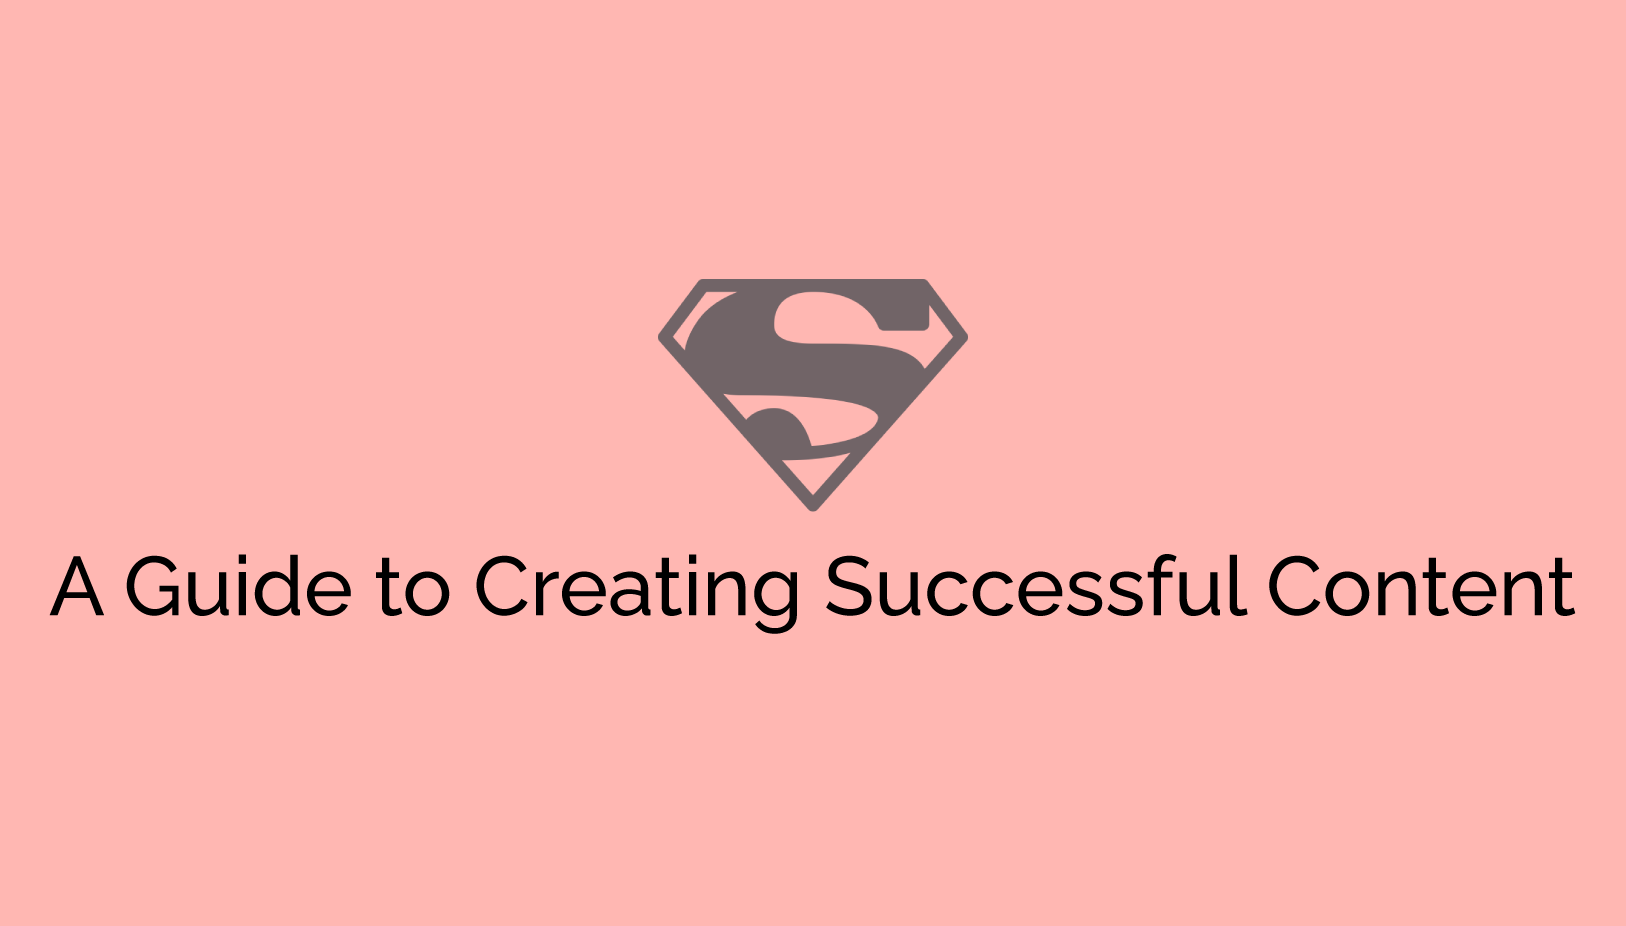 A Guide to Creating Successful Content